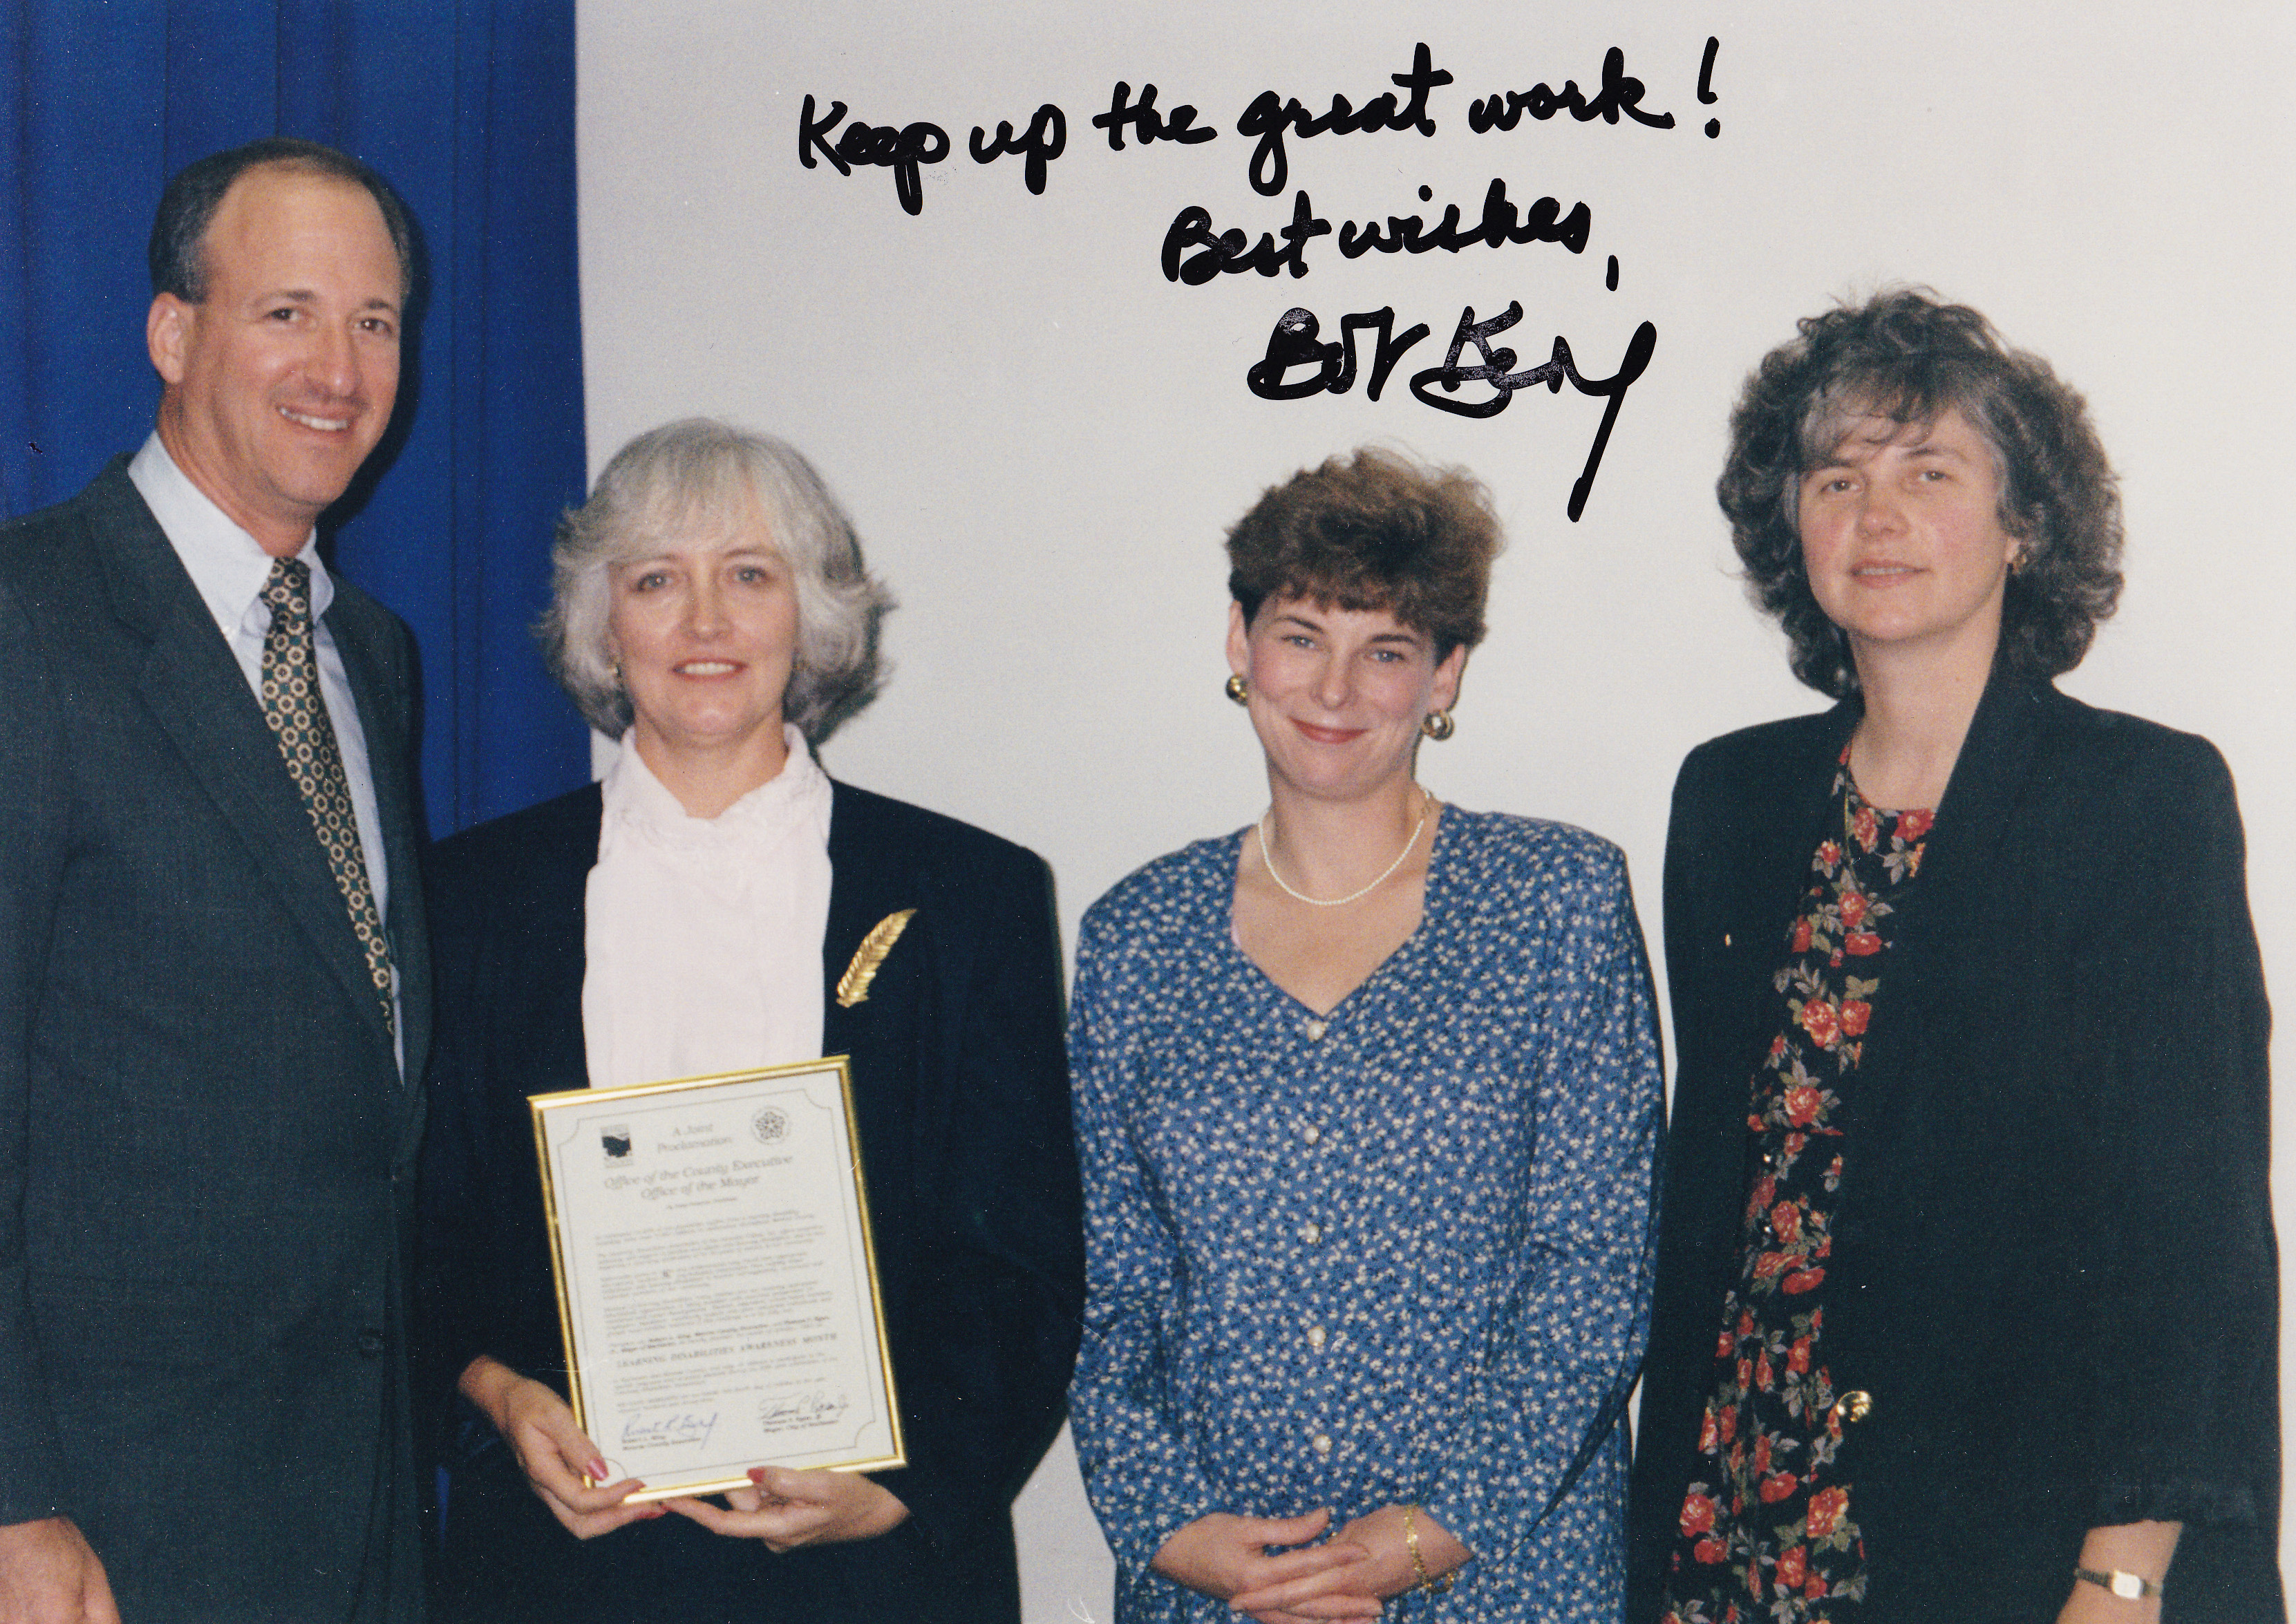 Former Monroe County Executive Bob King, Shirley Jung, and LDA members celebrate Learning Disabilities Association Month in the early 1990s